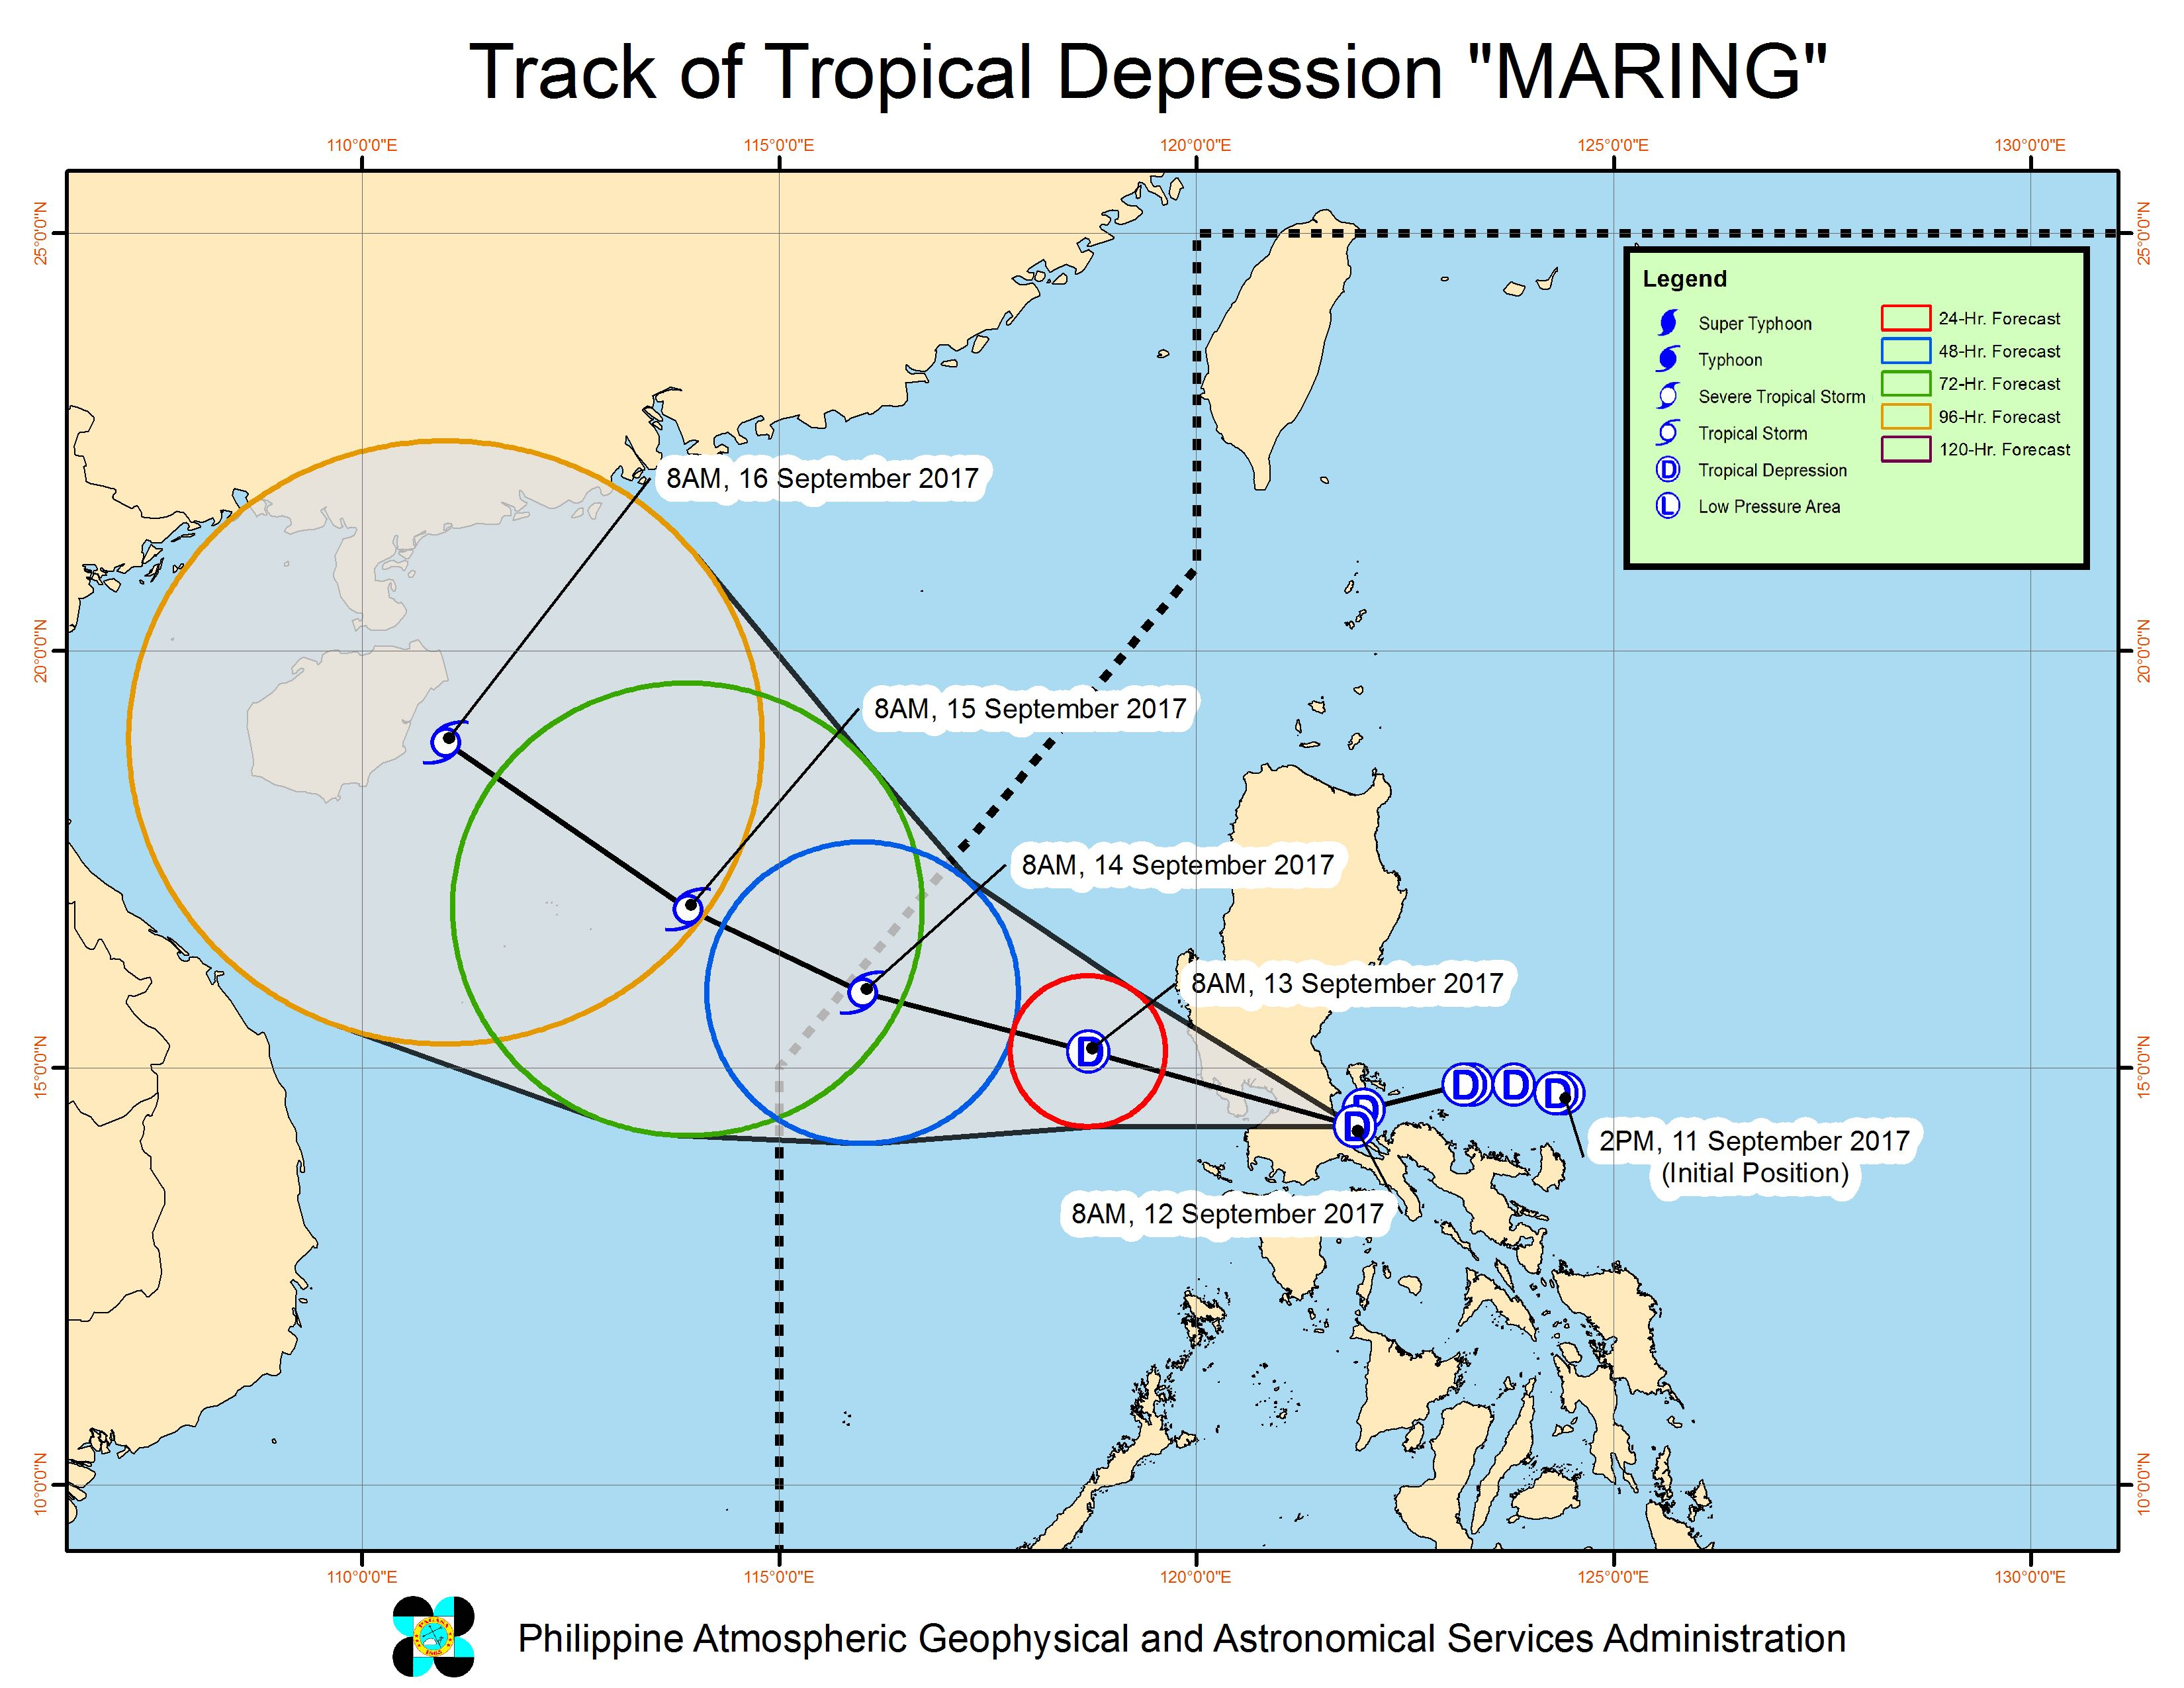 Forecast track of Tropical Depression Maring as of September 12, 11 am. Image courtesy of PAGASA